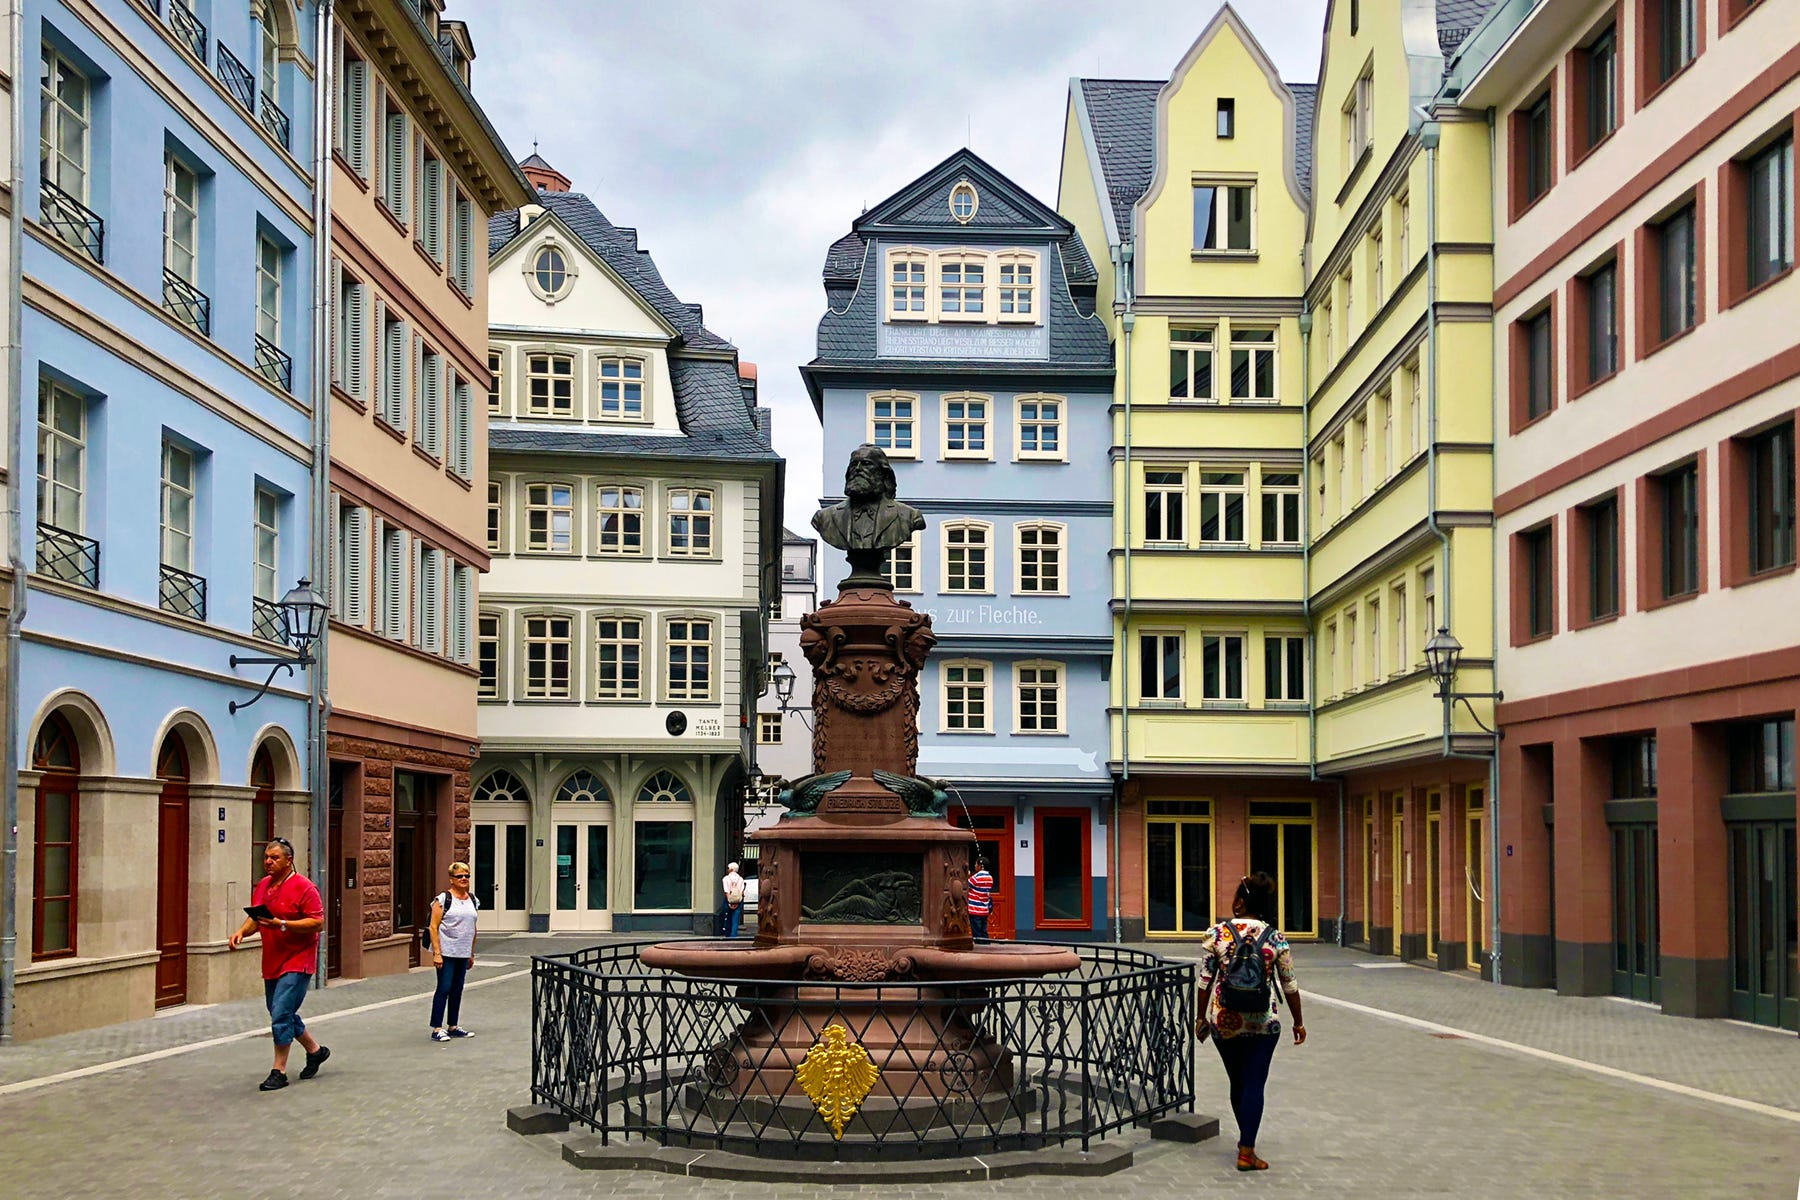 Rick Steves: What's new in Germany and the Netherlands for 2019